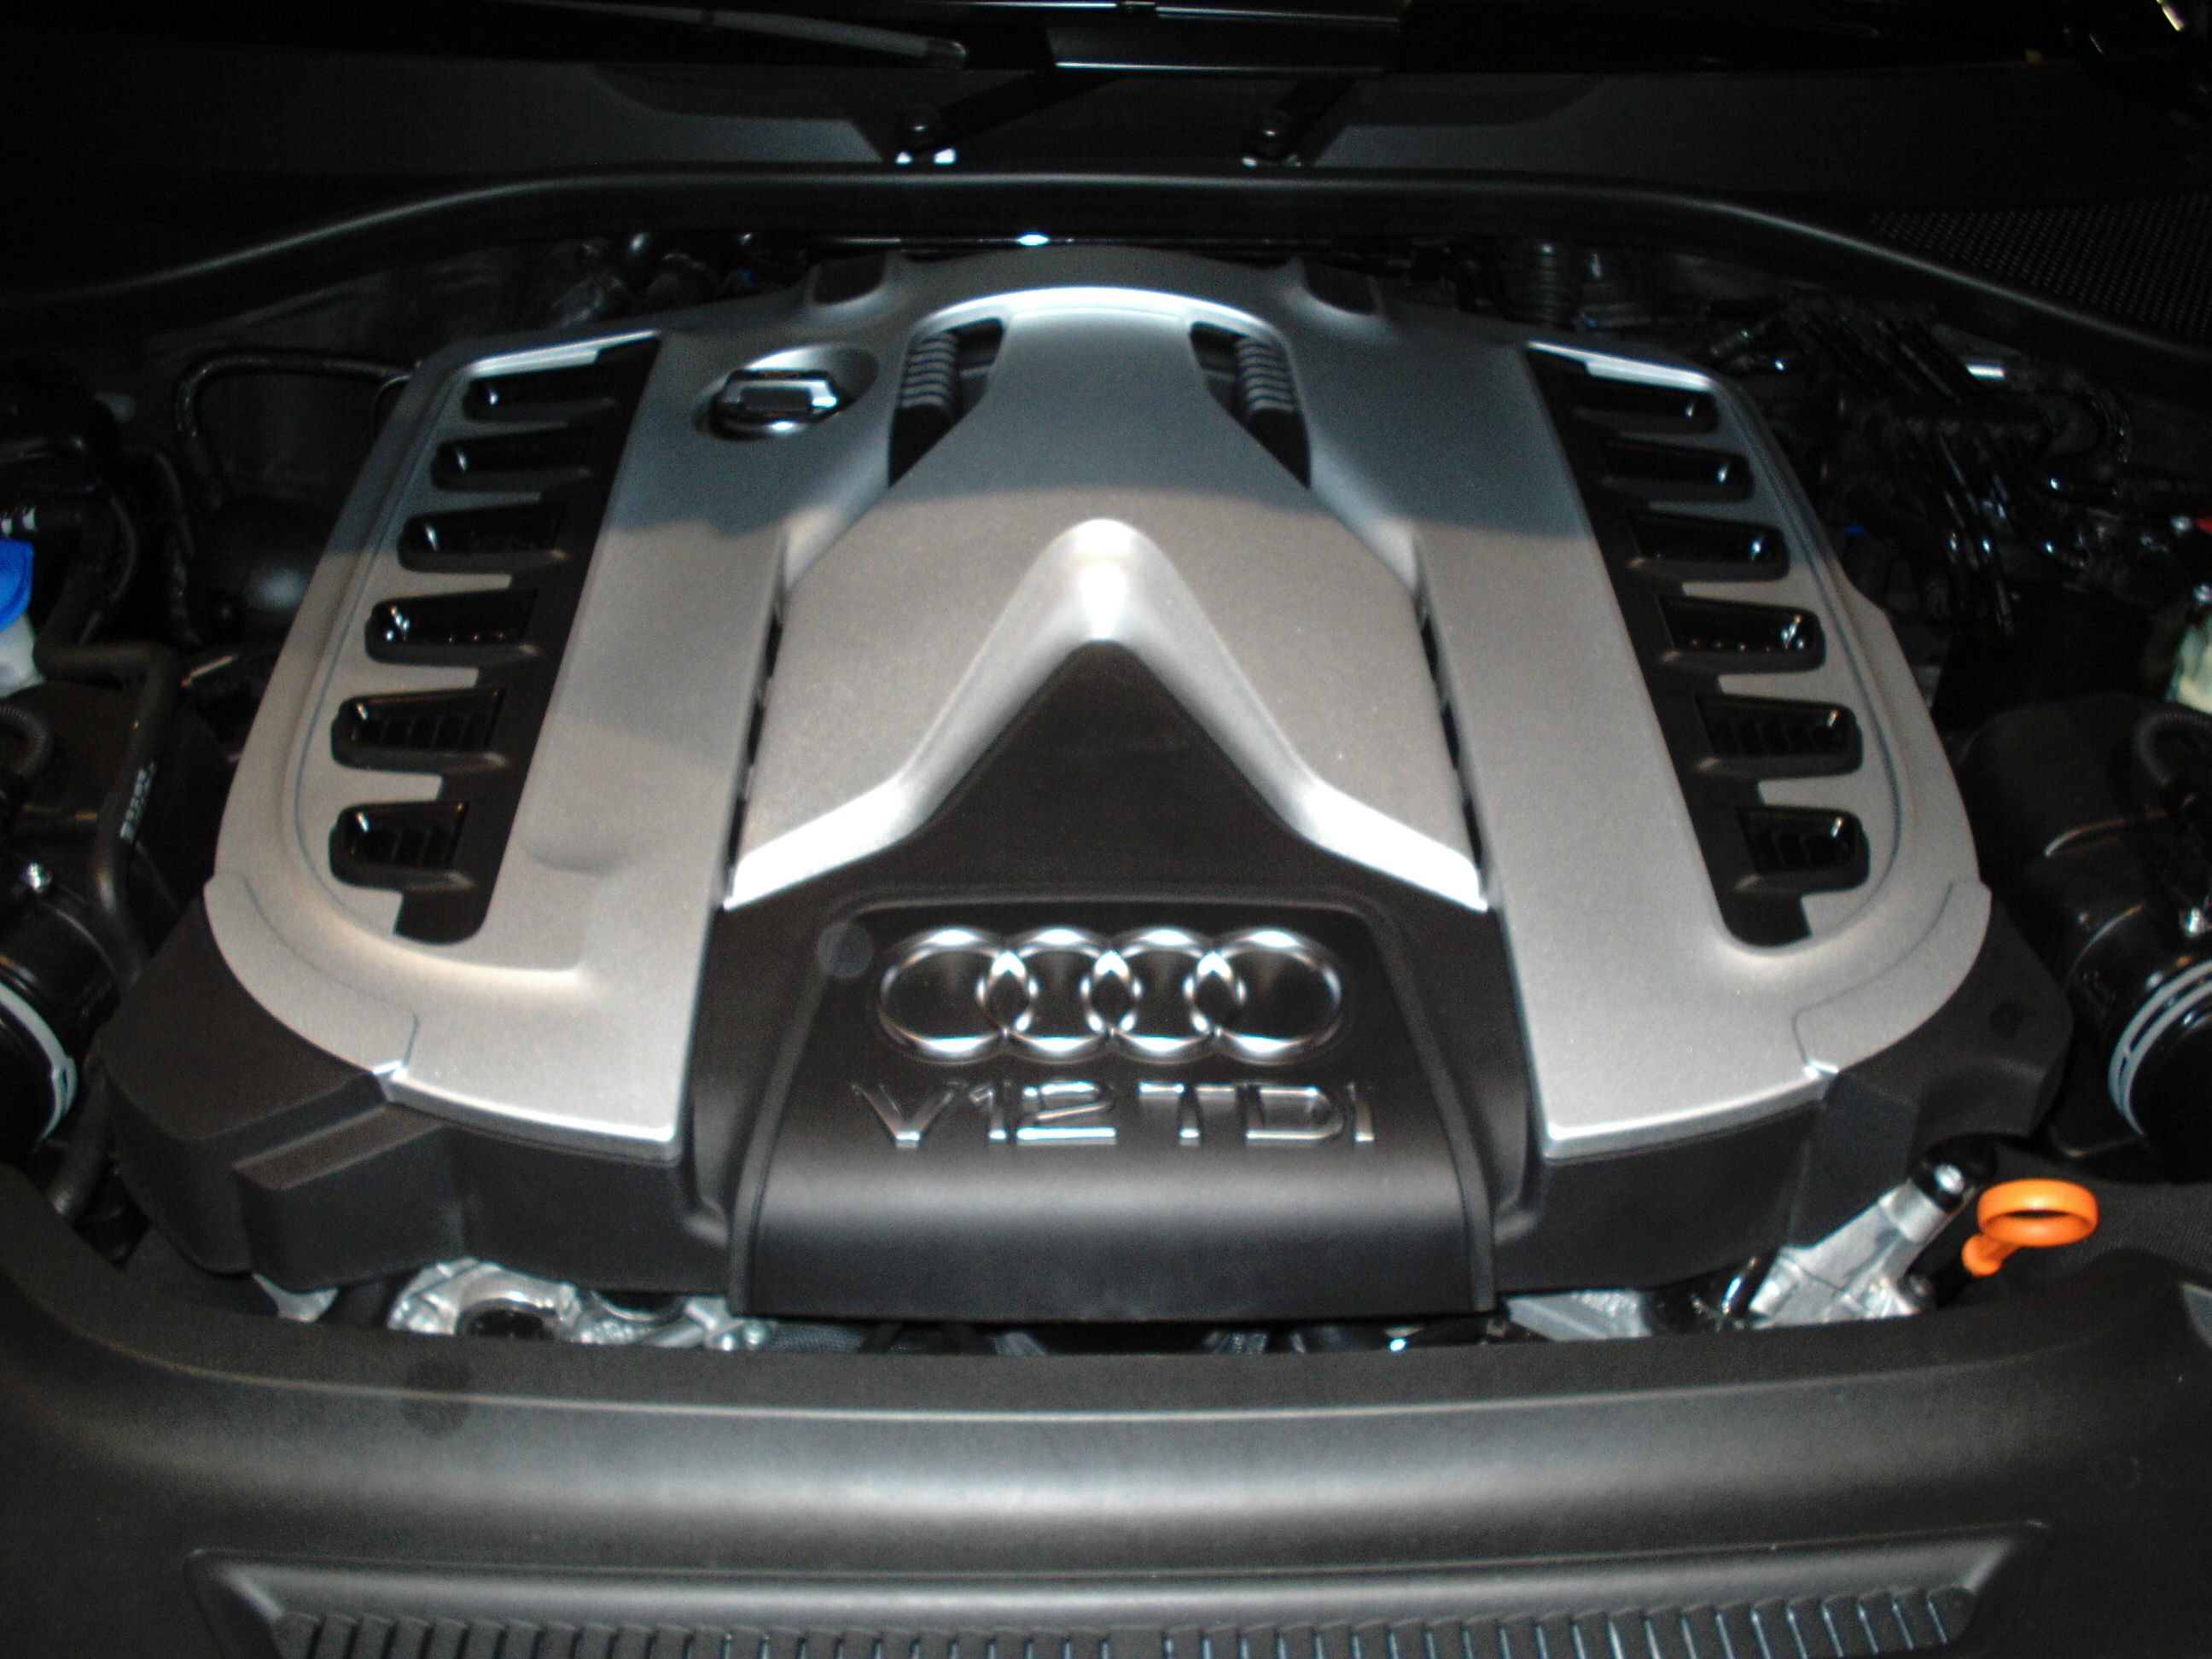 Description Audi Q7 V12 TDI engine front-view.jpg